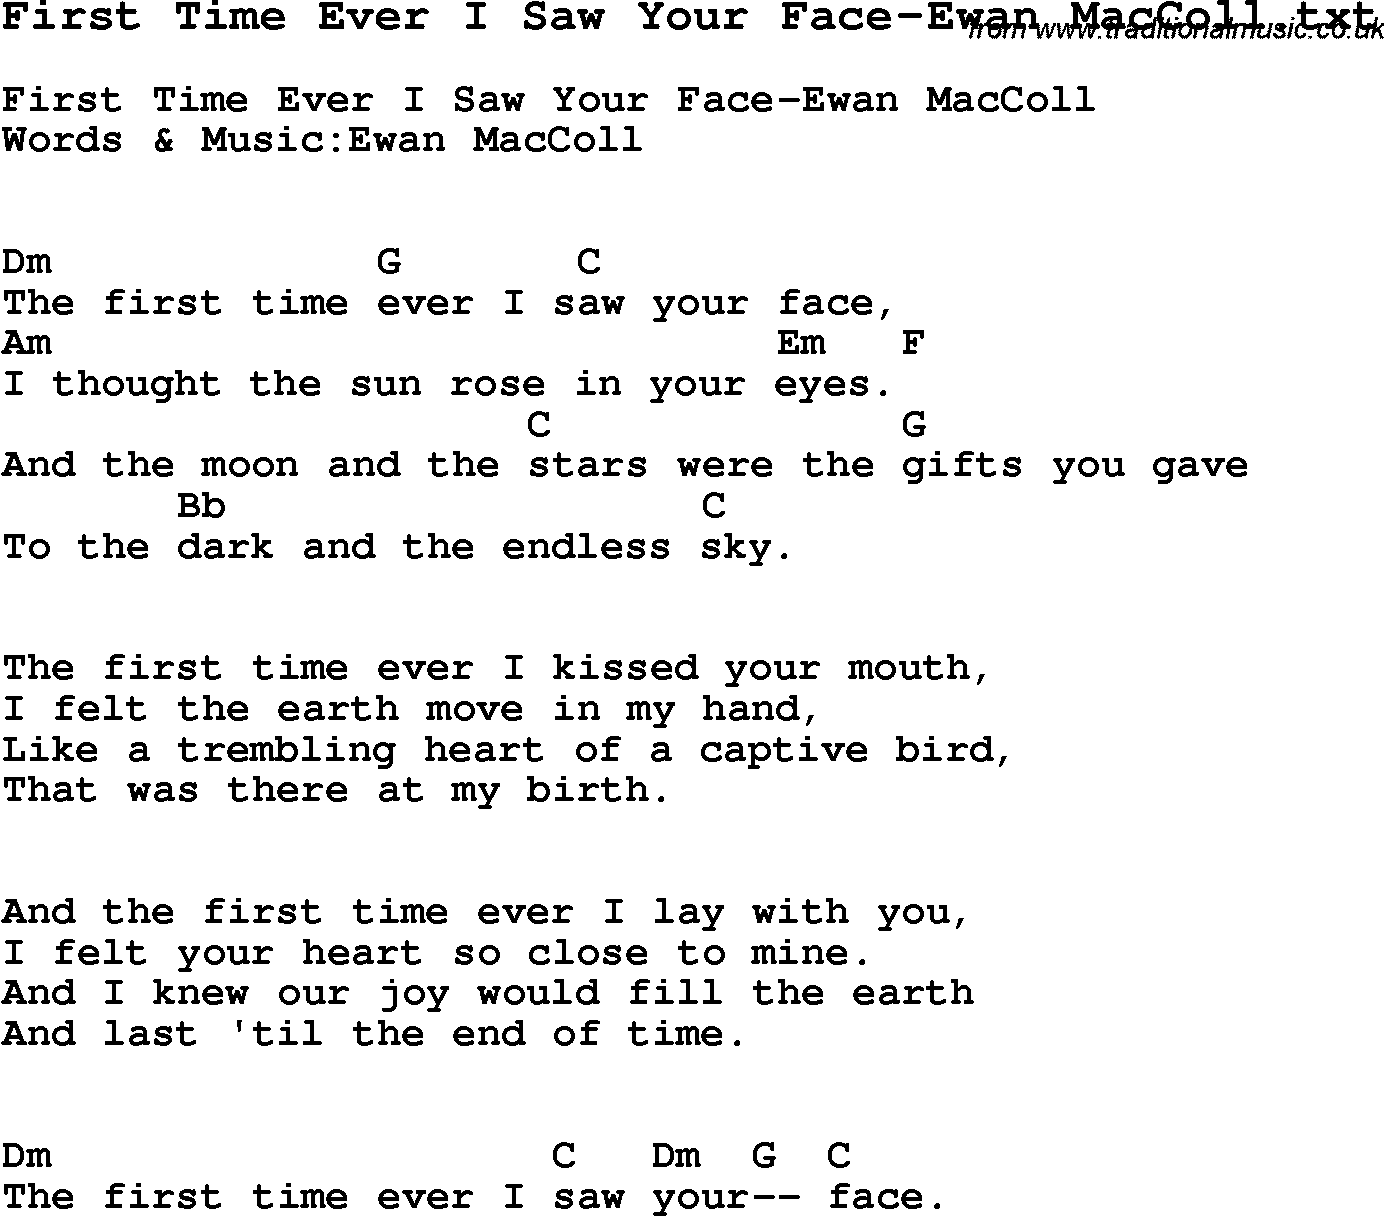 First Time Ever I Saw Your Face-Ewan MacColl